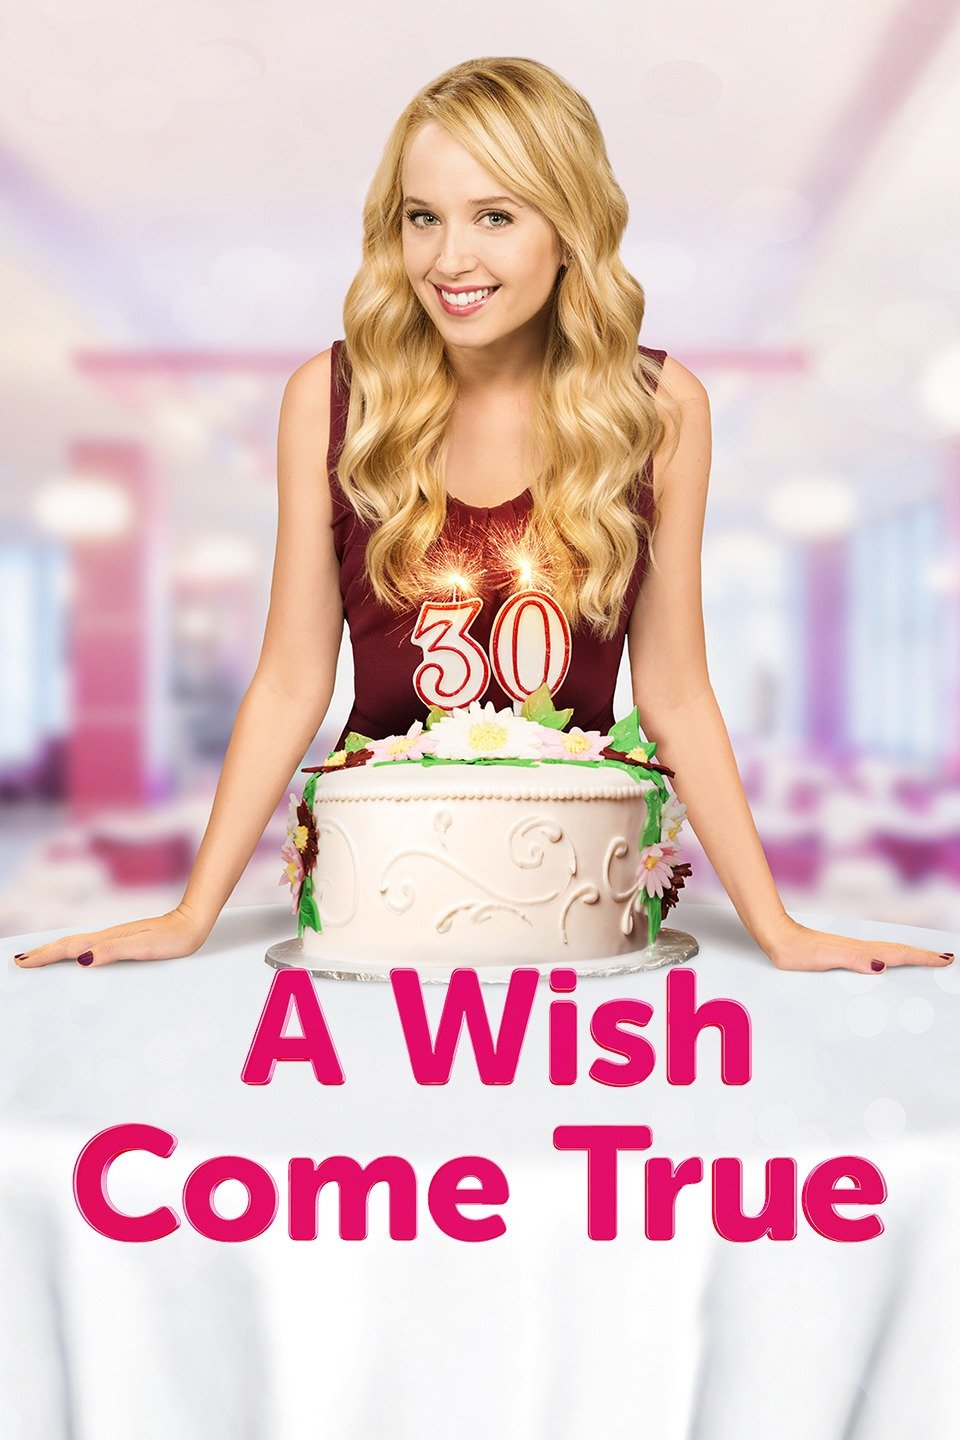 A Wish Come True (2015)